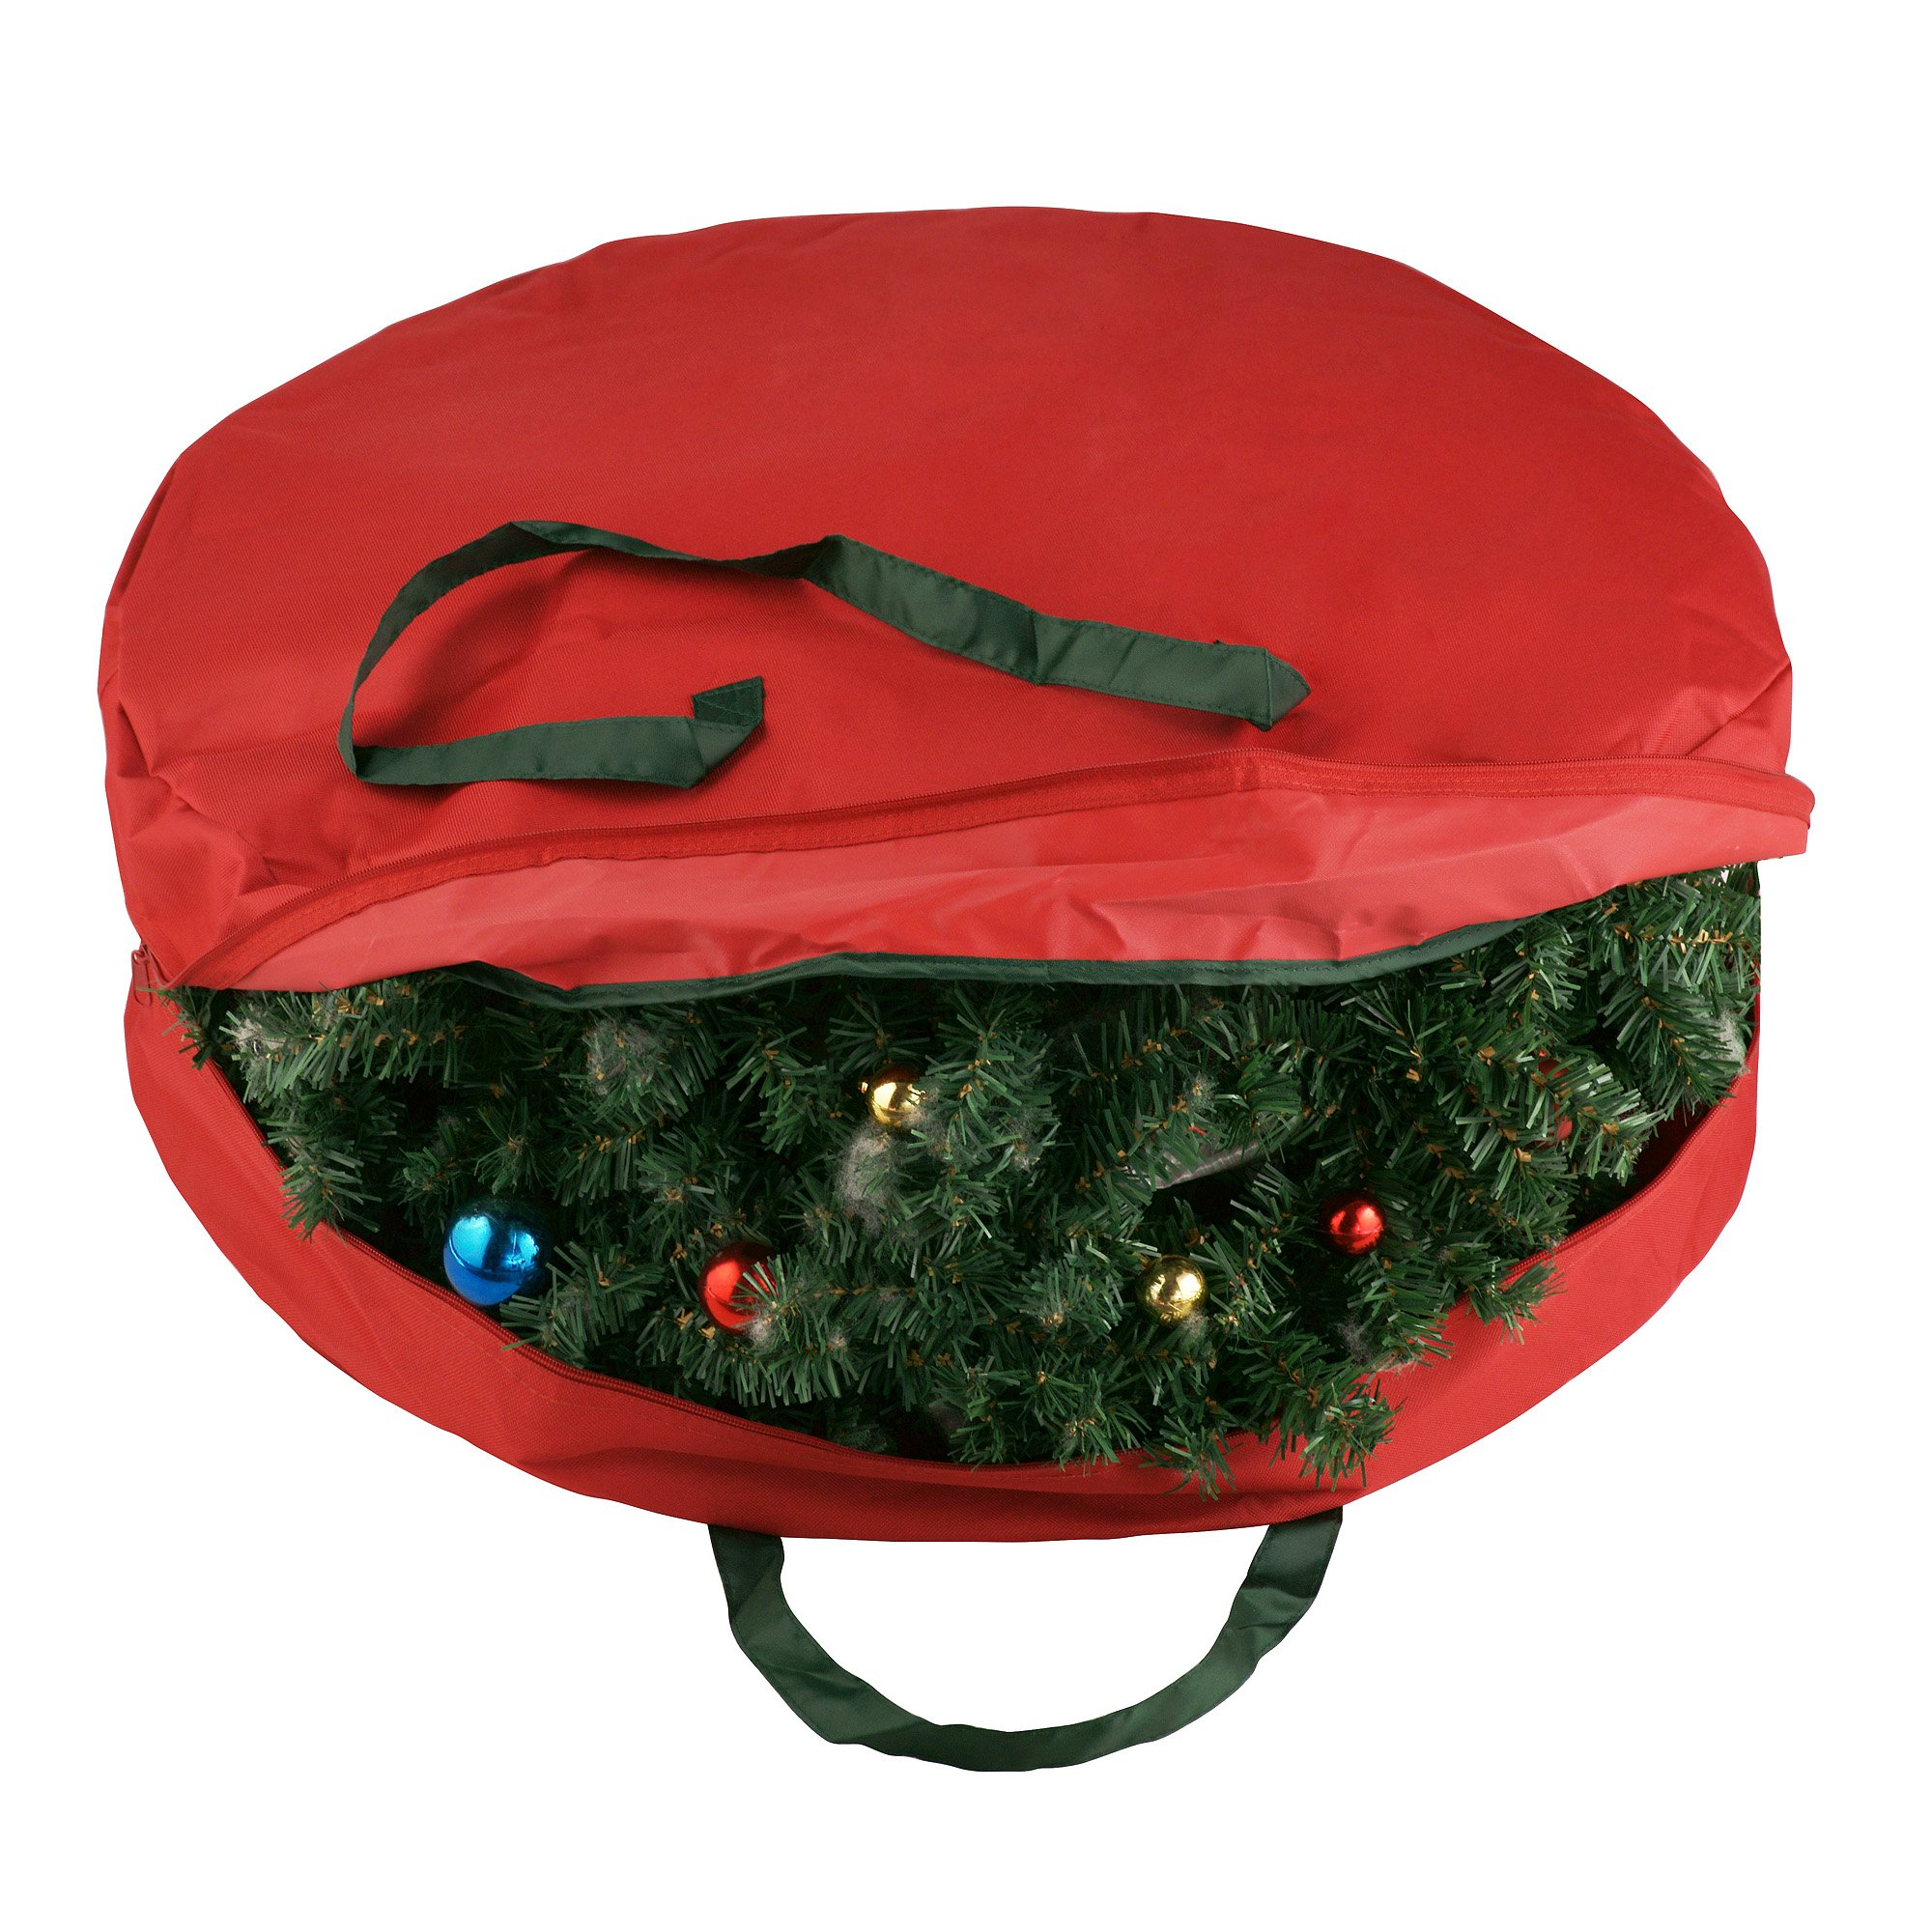 Elf Stor Supreme Canvas Holiday Christmas Wreath Storage Bag For 30'' Wreaths by Elf Stor